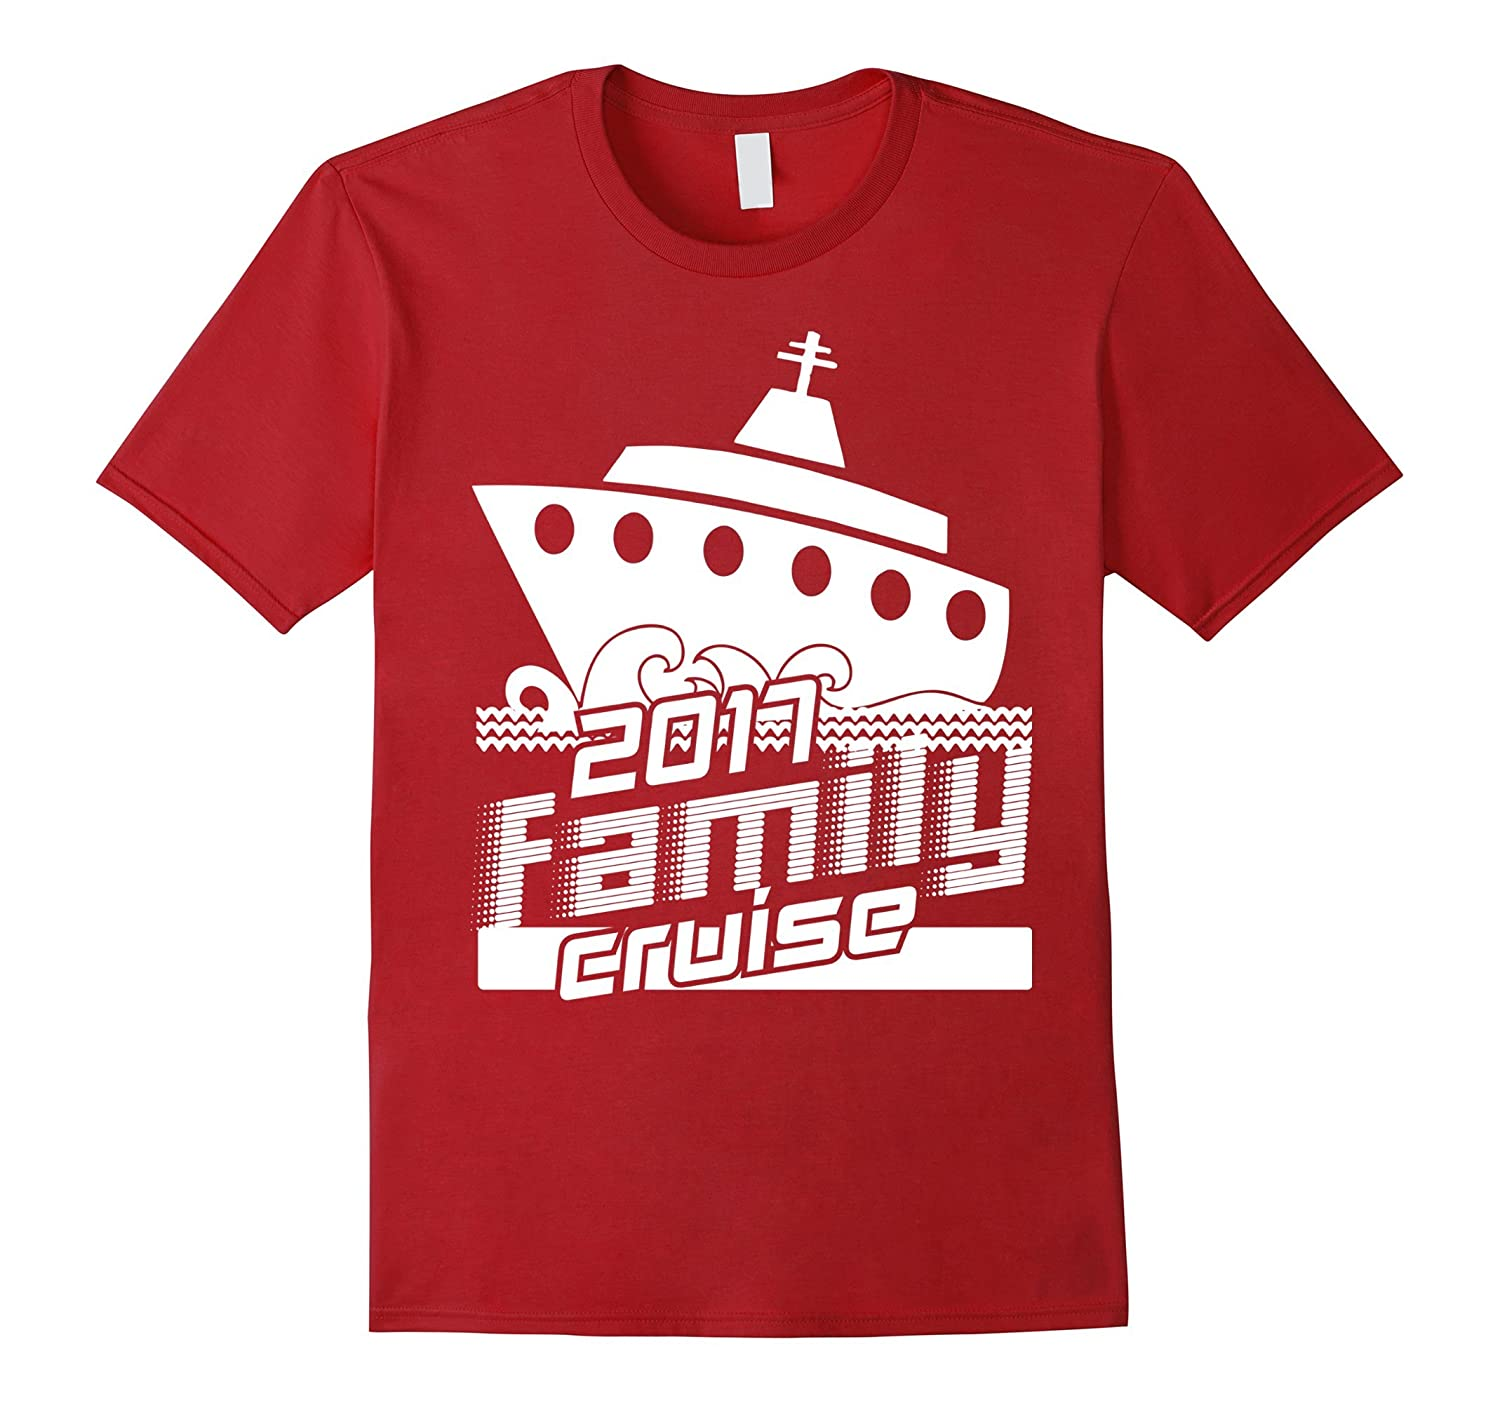 2017 Family Cruise Shirts Group Vacation Summer T Shirt-CD